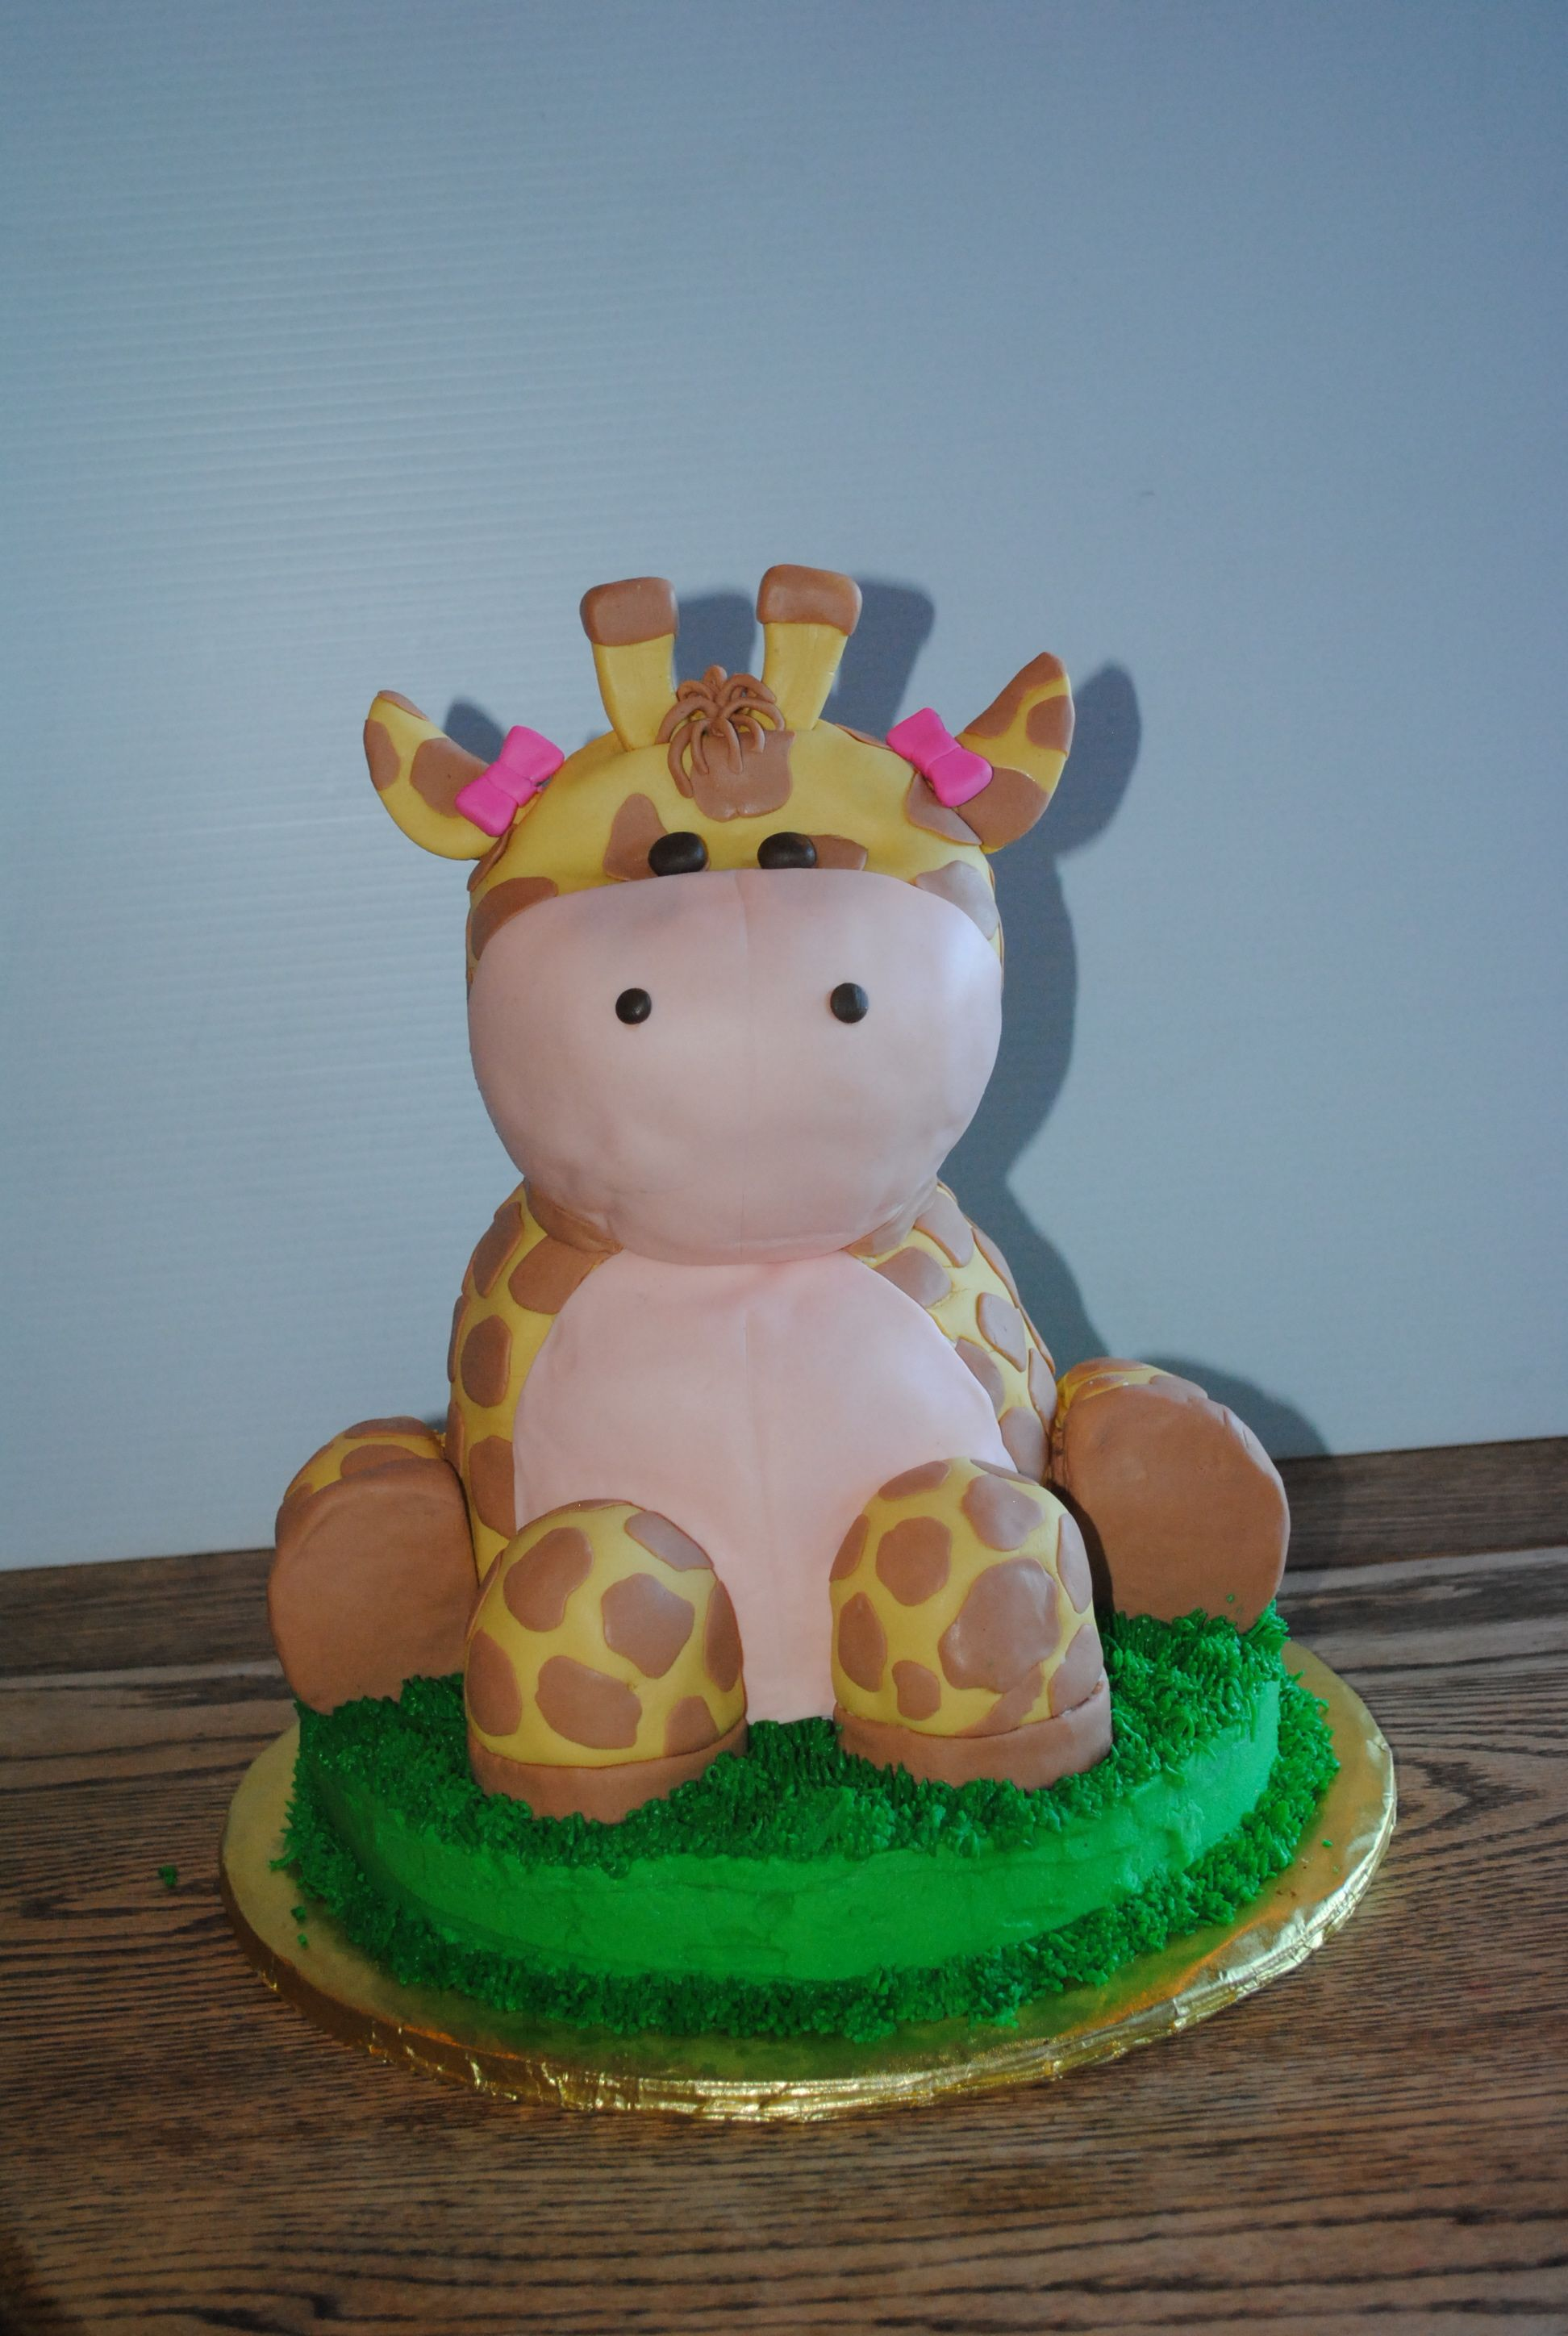 This is a Vegan chocolate giraffe cake I made for a little girls